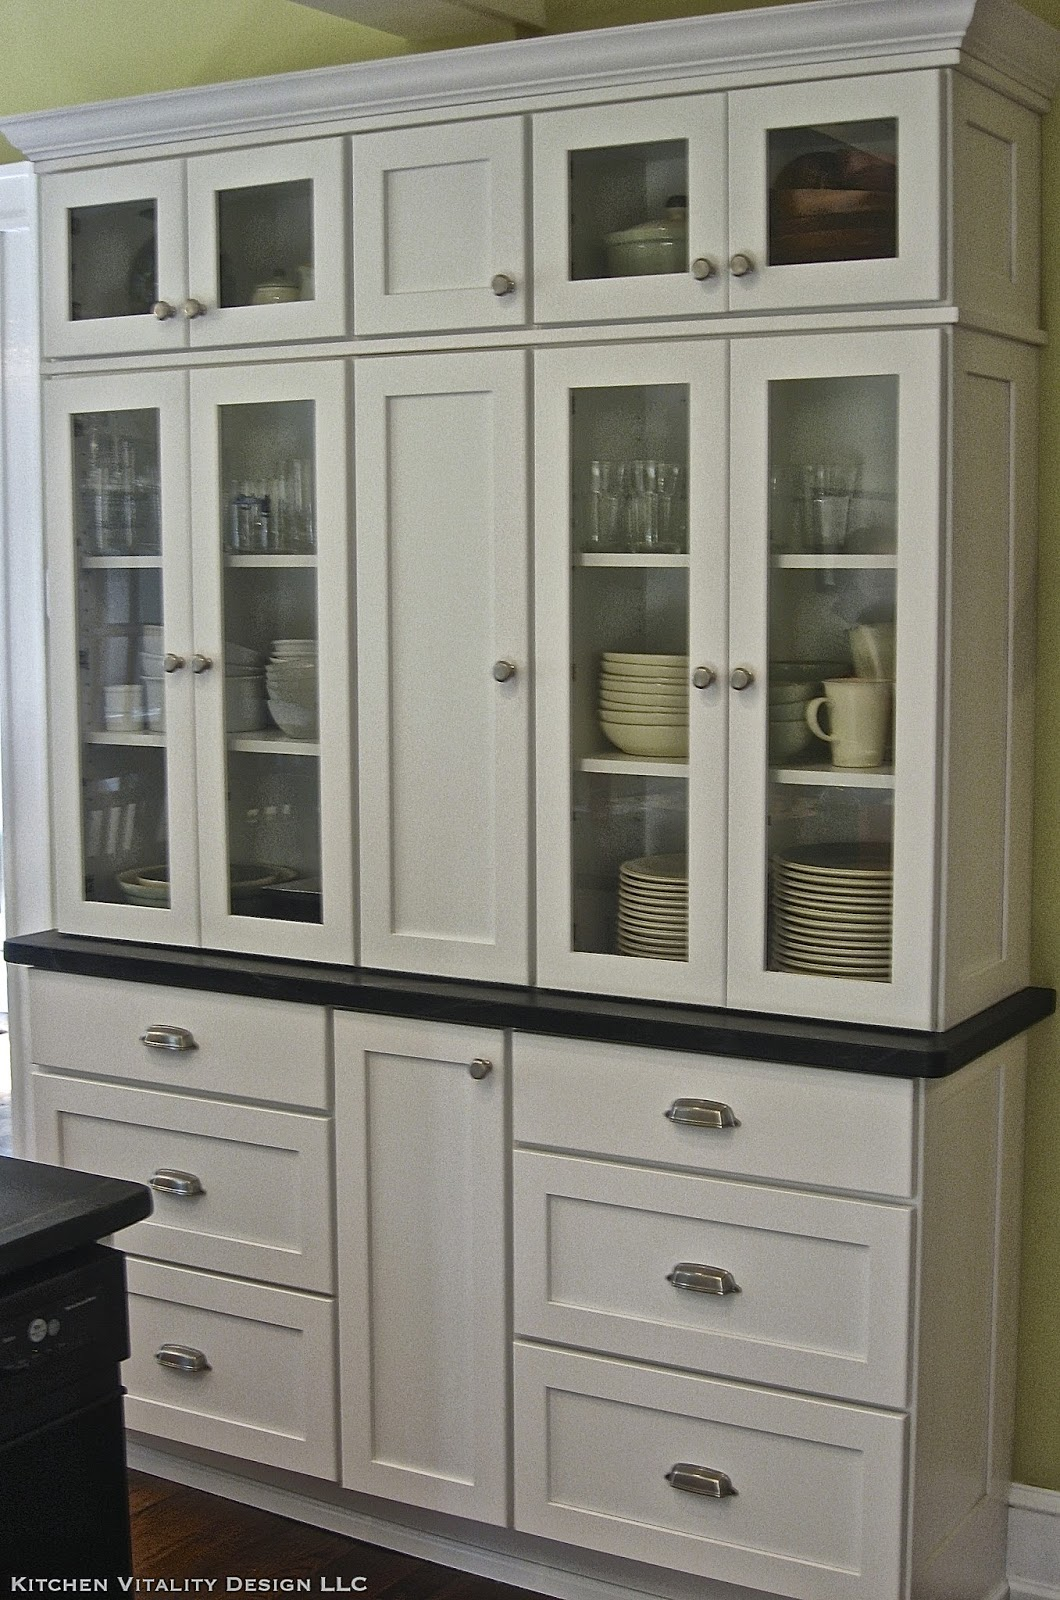 a built in kitchen hutch kitchen hutch cabinets featured image via